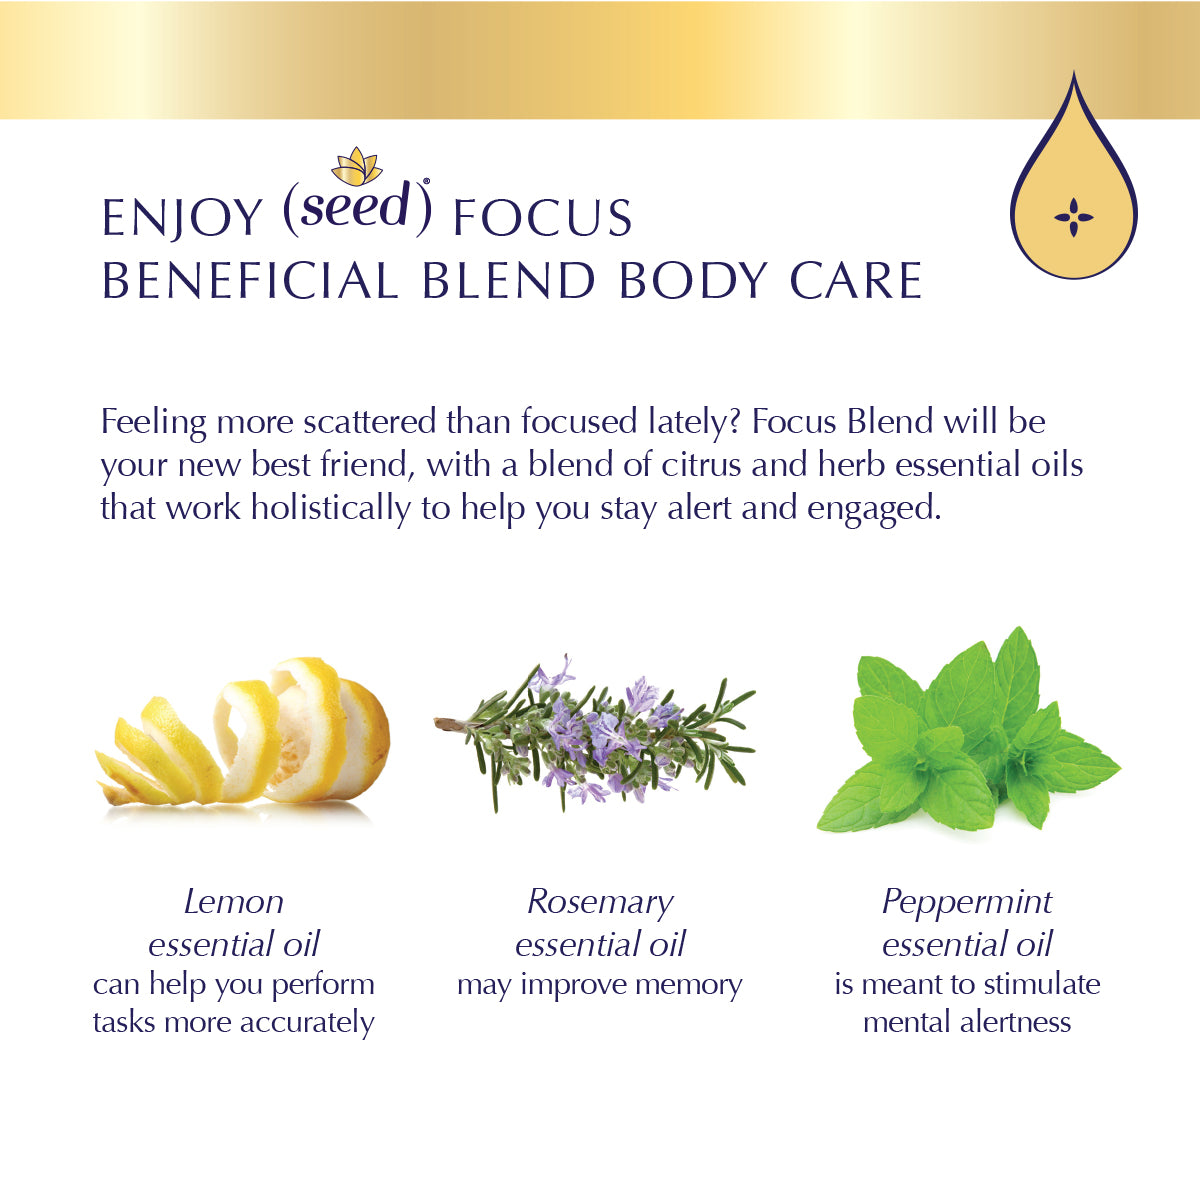 Seed Focus Beneficial Blend Body Care